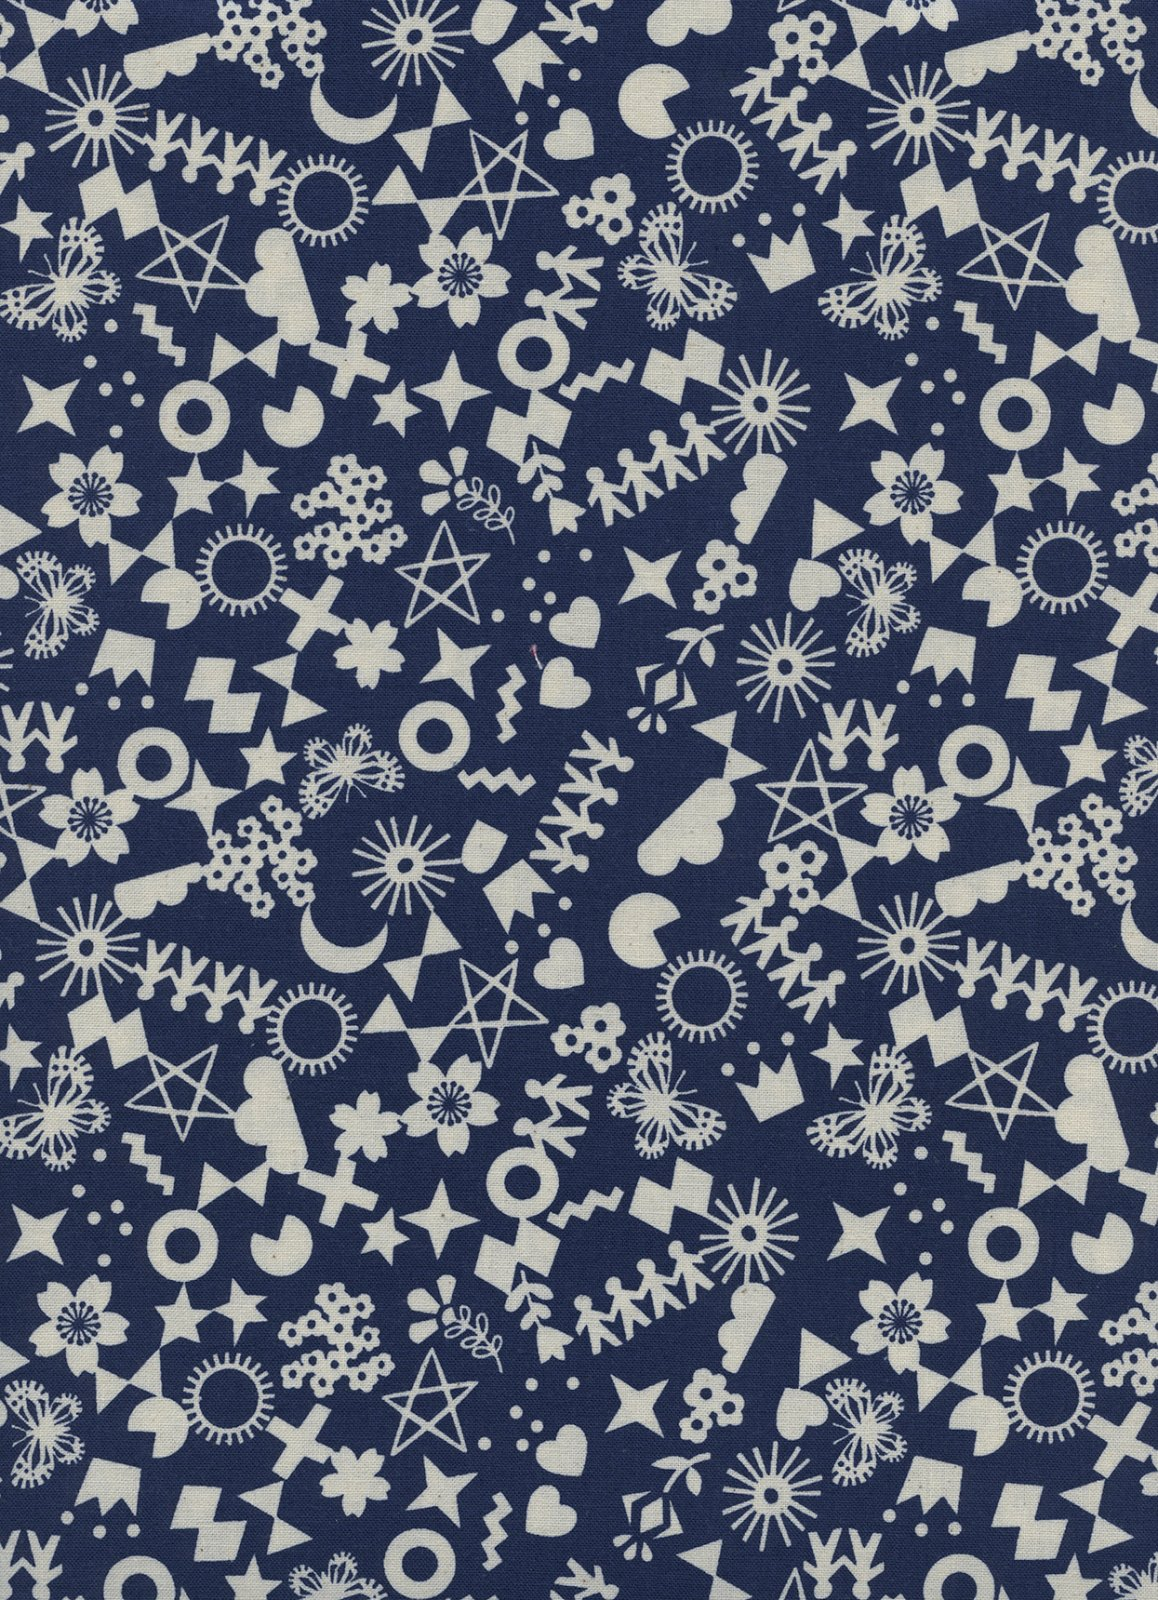 Paper Cuts - Cut It Out - Navy Unbleached Cotton